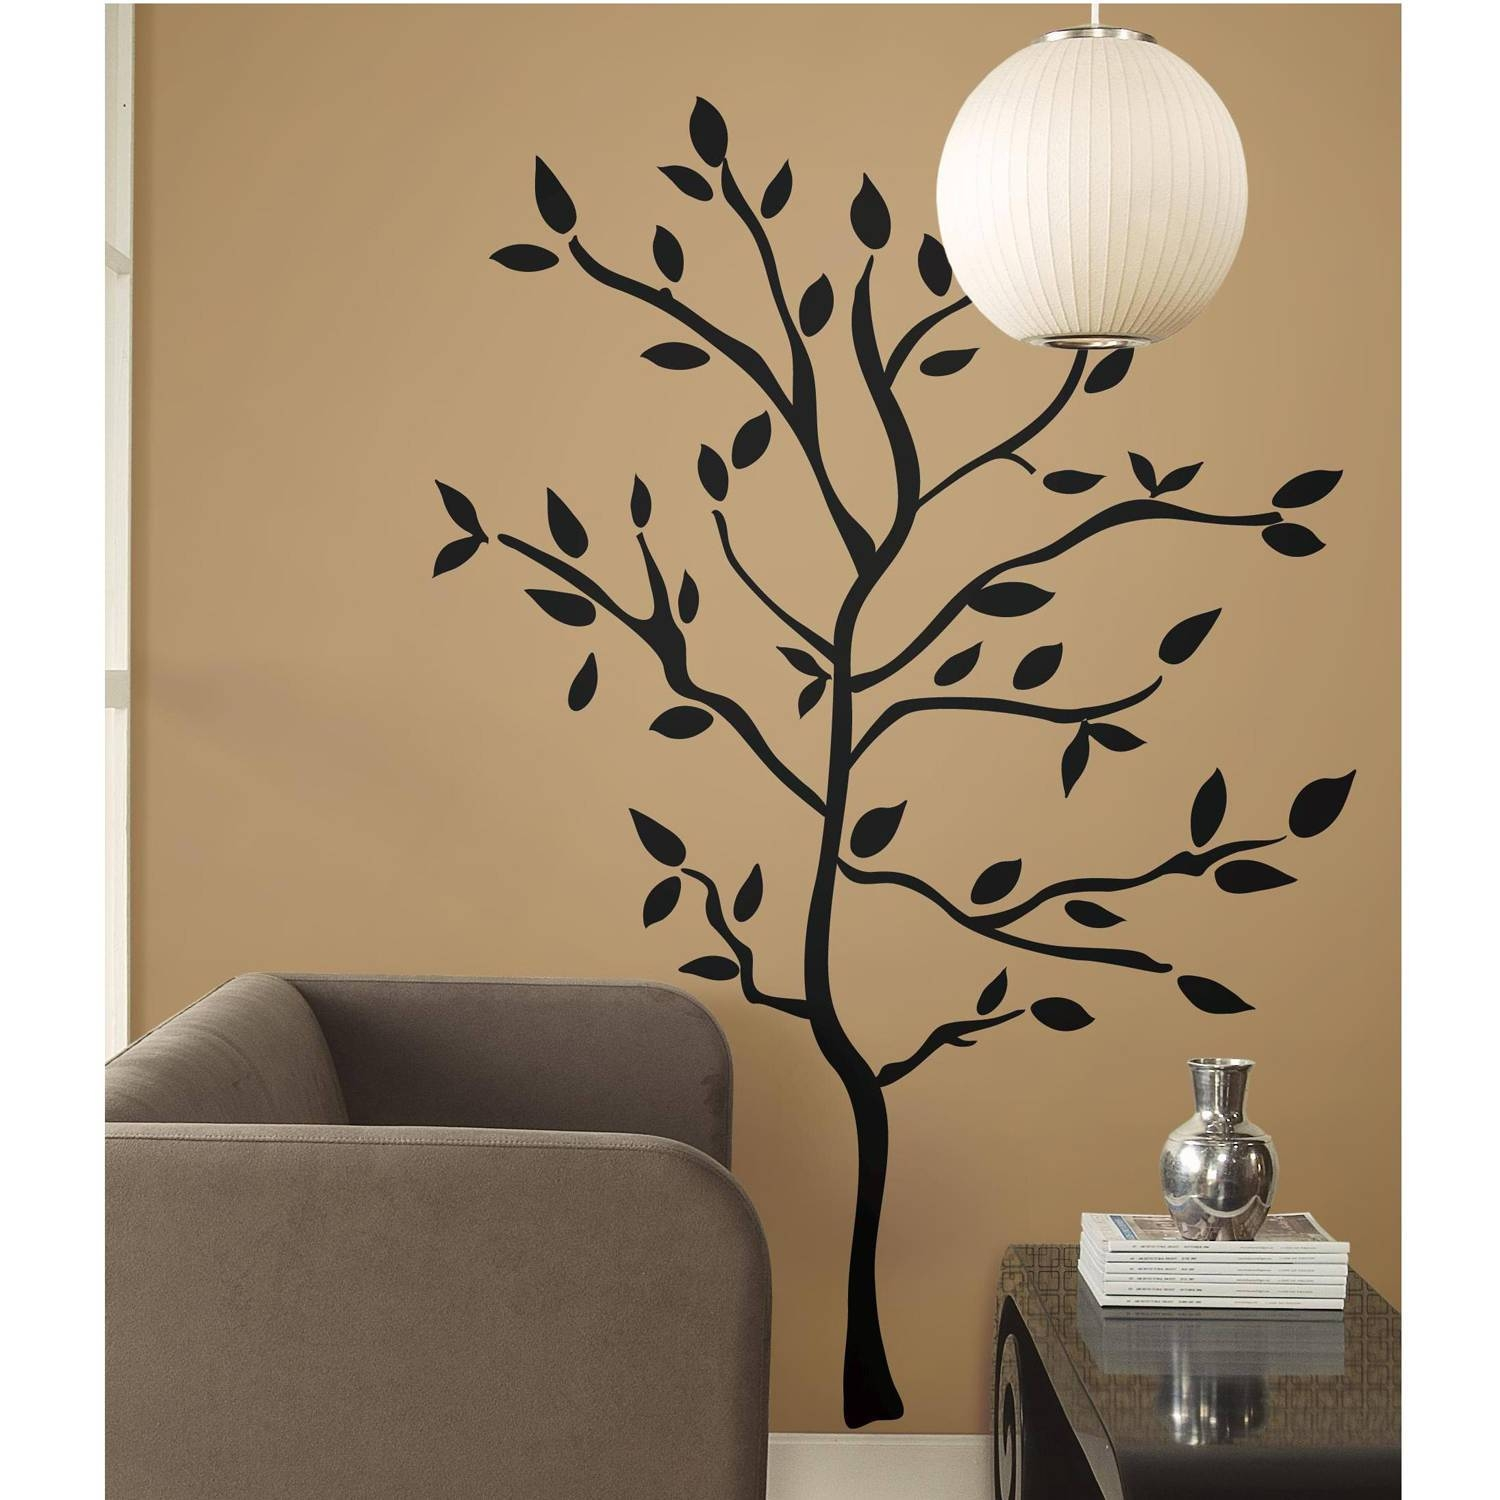 Tree Branches Peel And Stick Wall Decals – Walmart Regarding 2017 3d Wall Art Walmart (View 4 of 20)